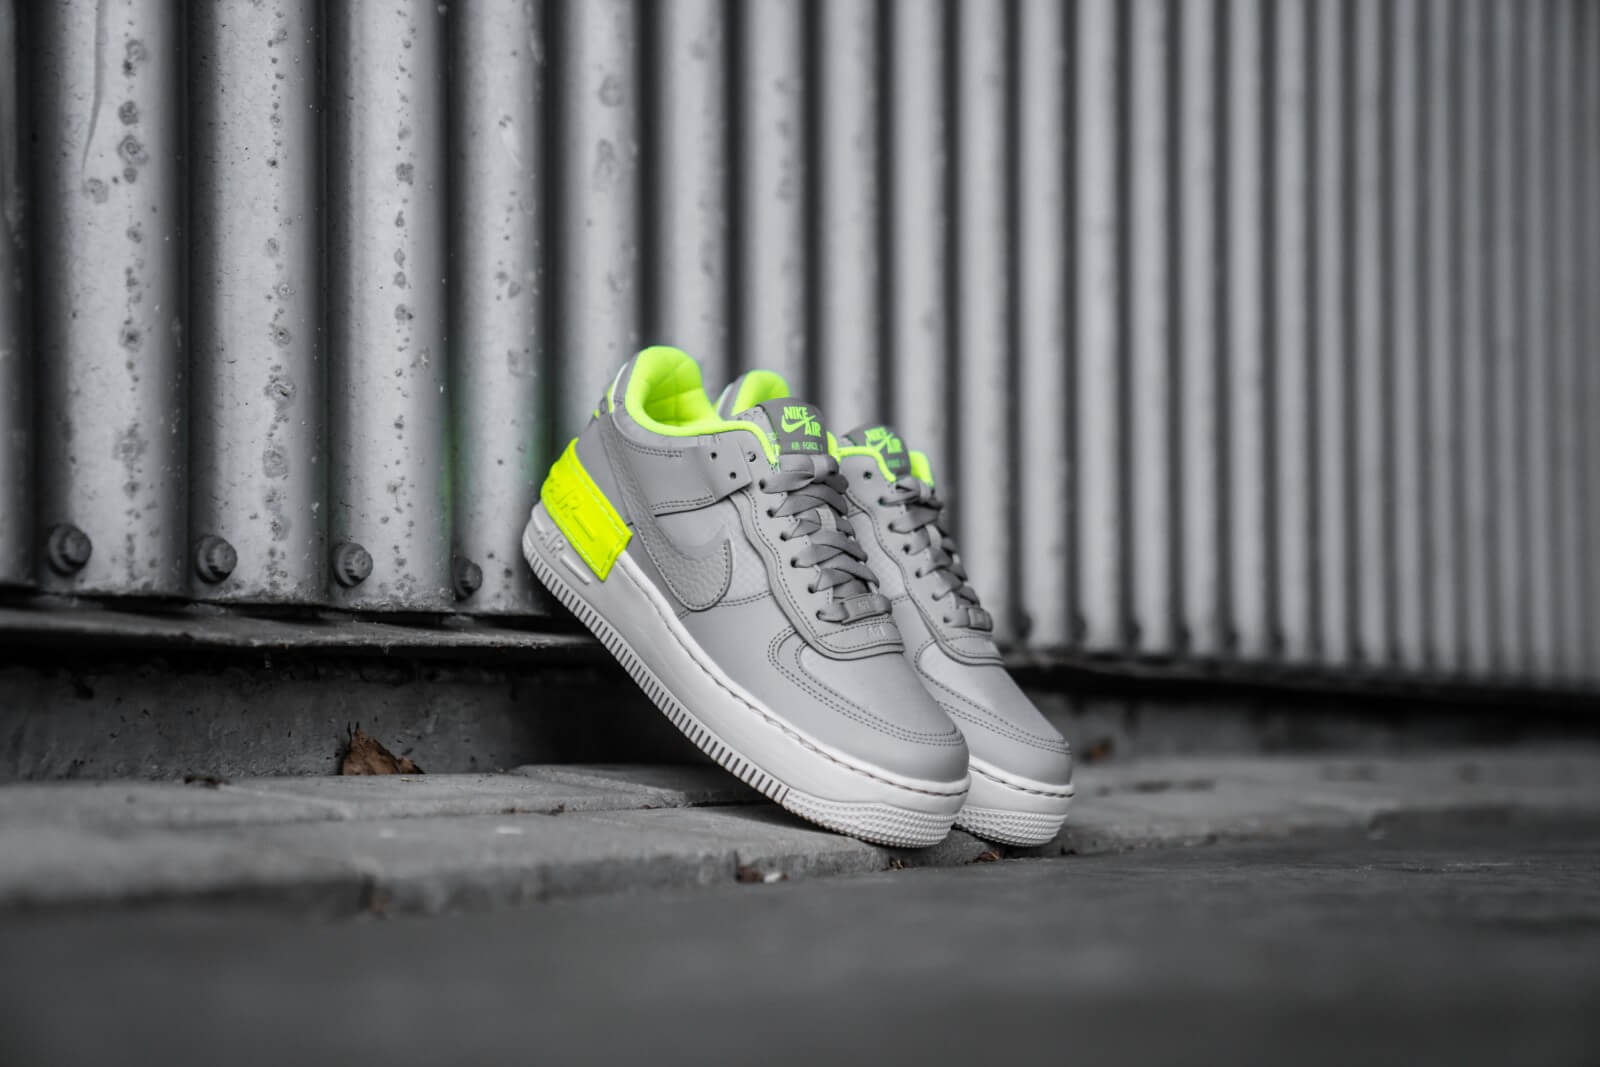 nike air force 1 shadow femme grise